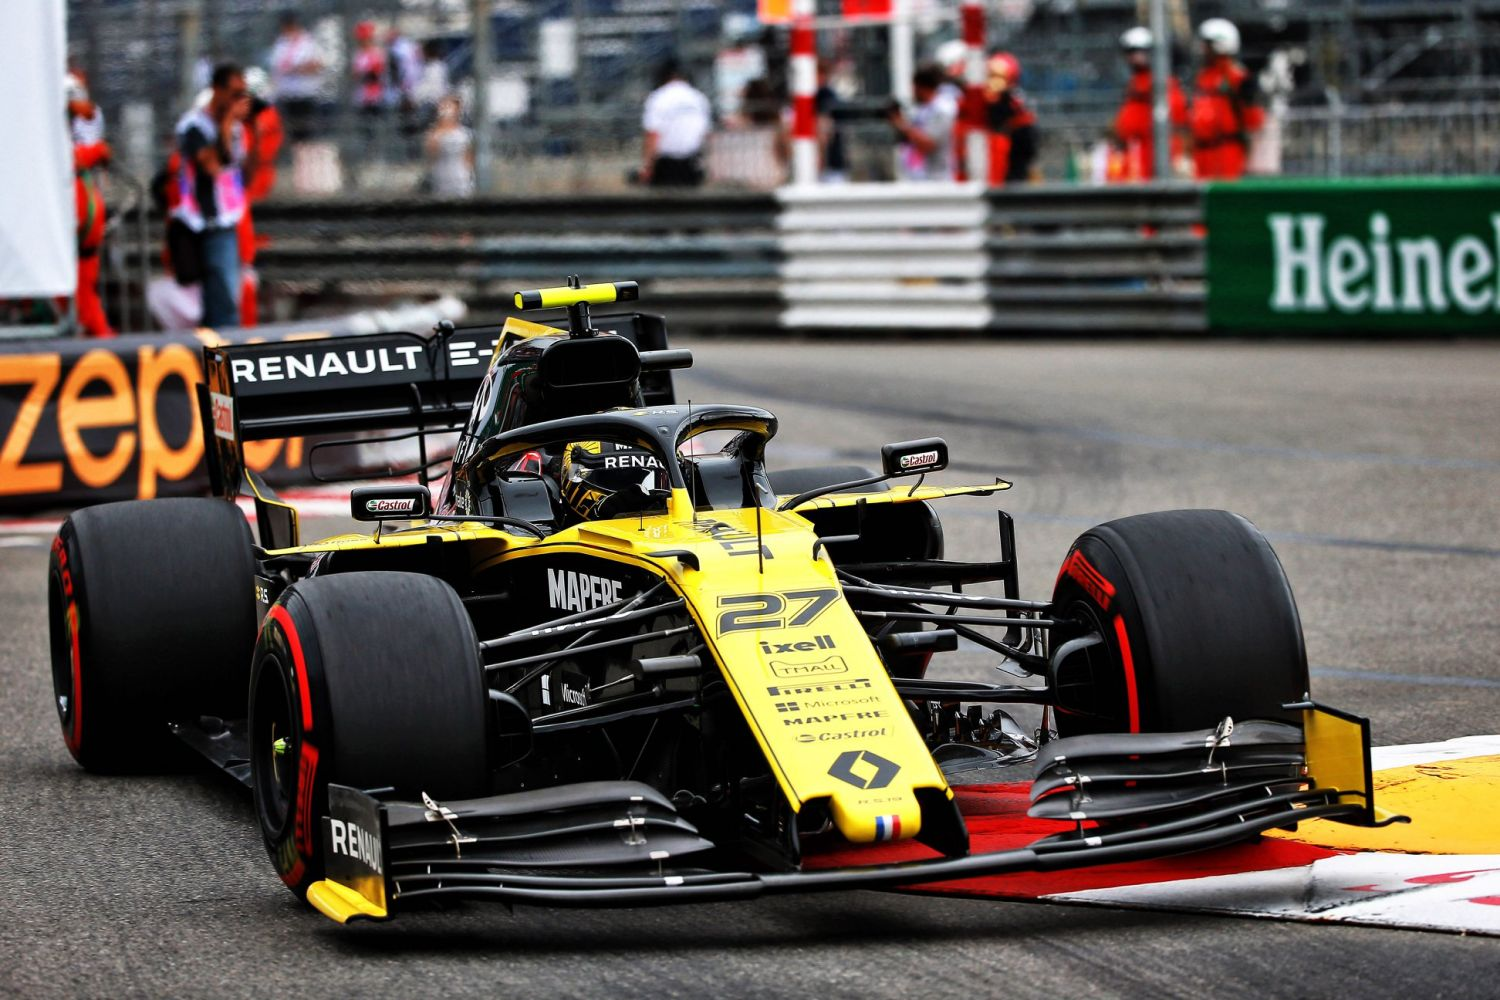 Exclusif - Monaco : immersion avec le Renault F1 Team !